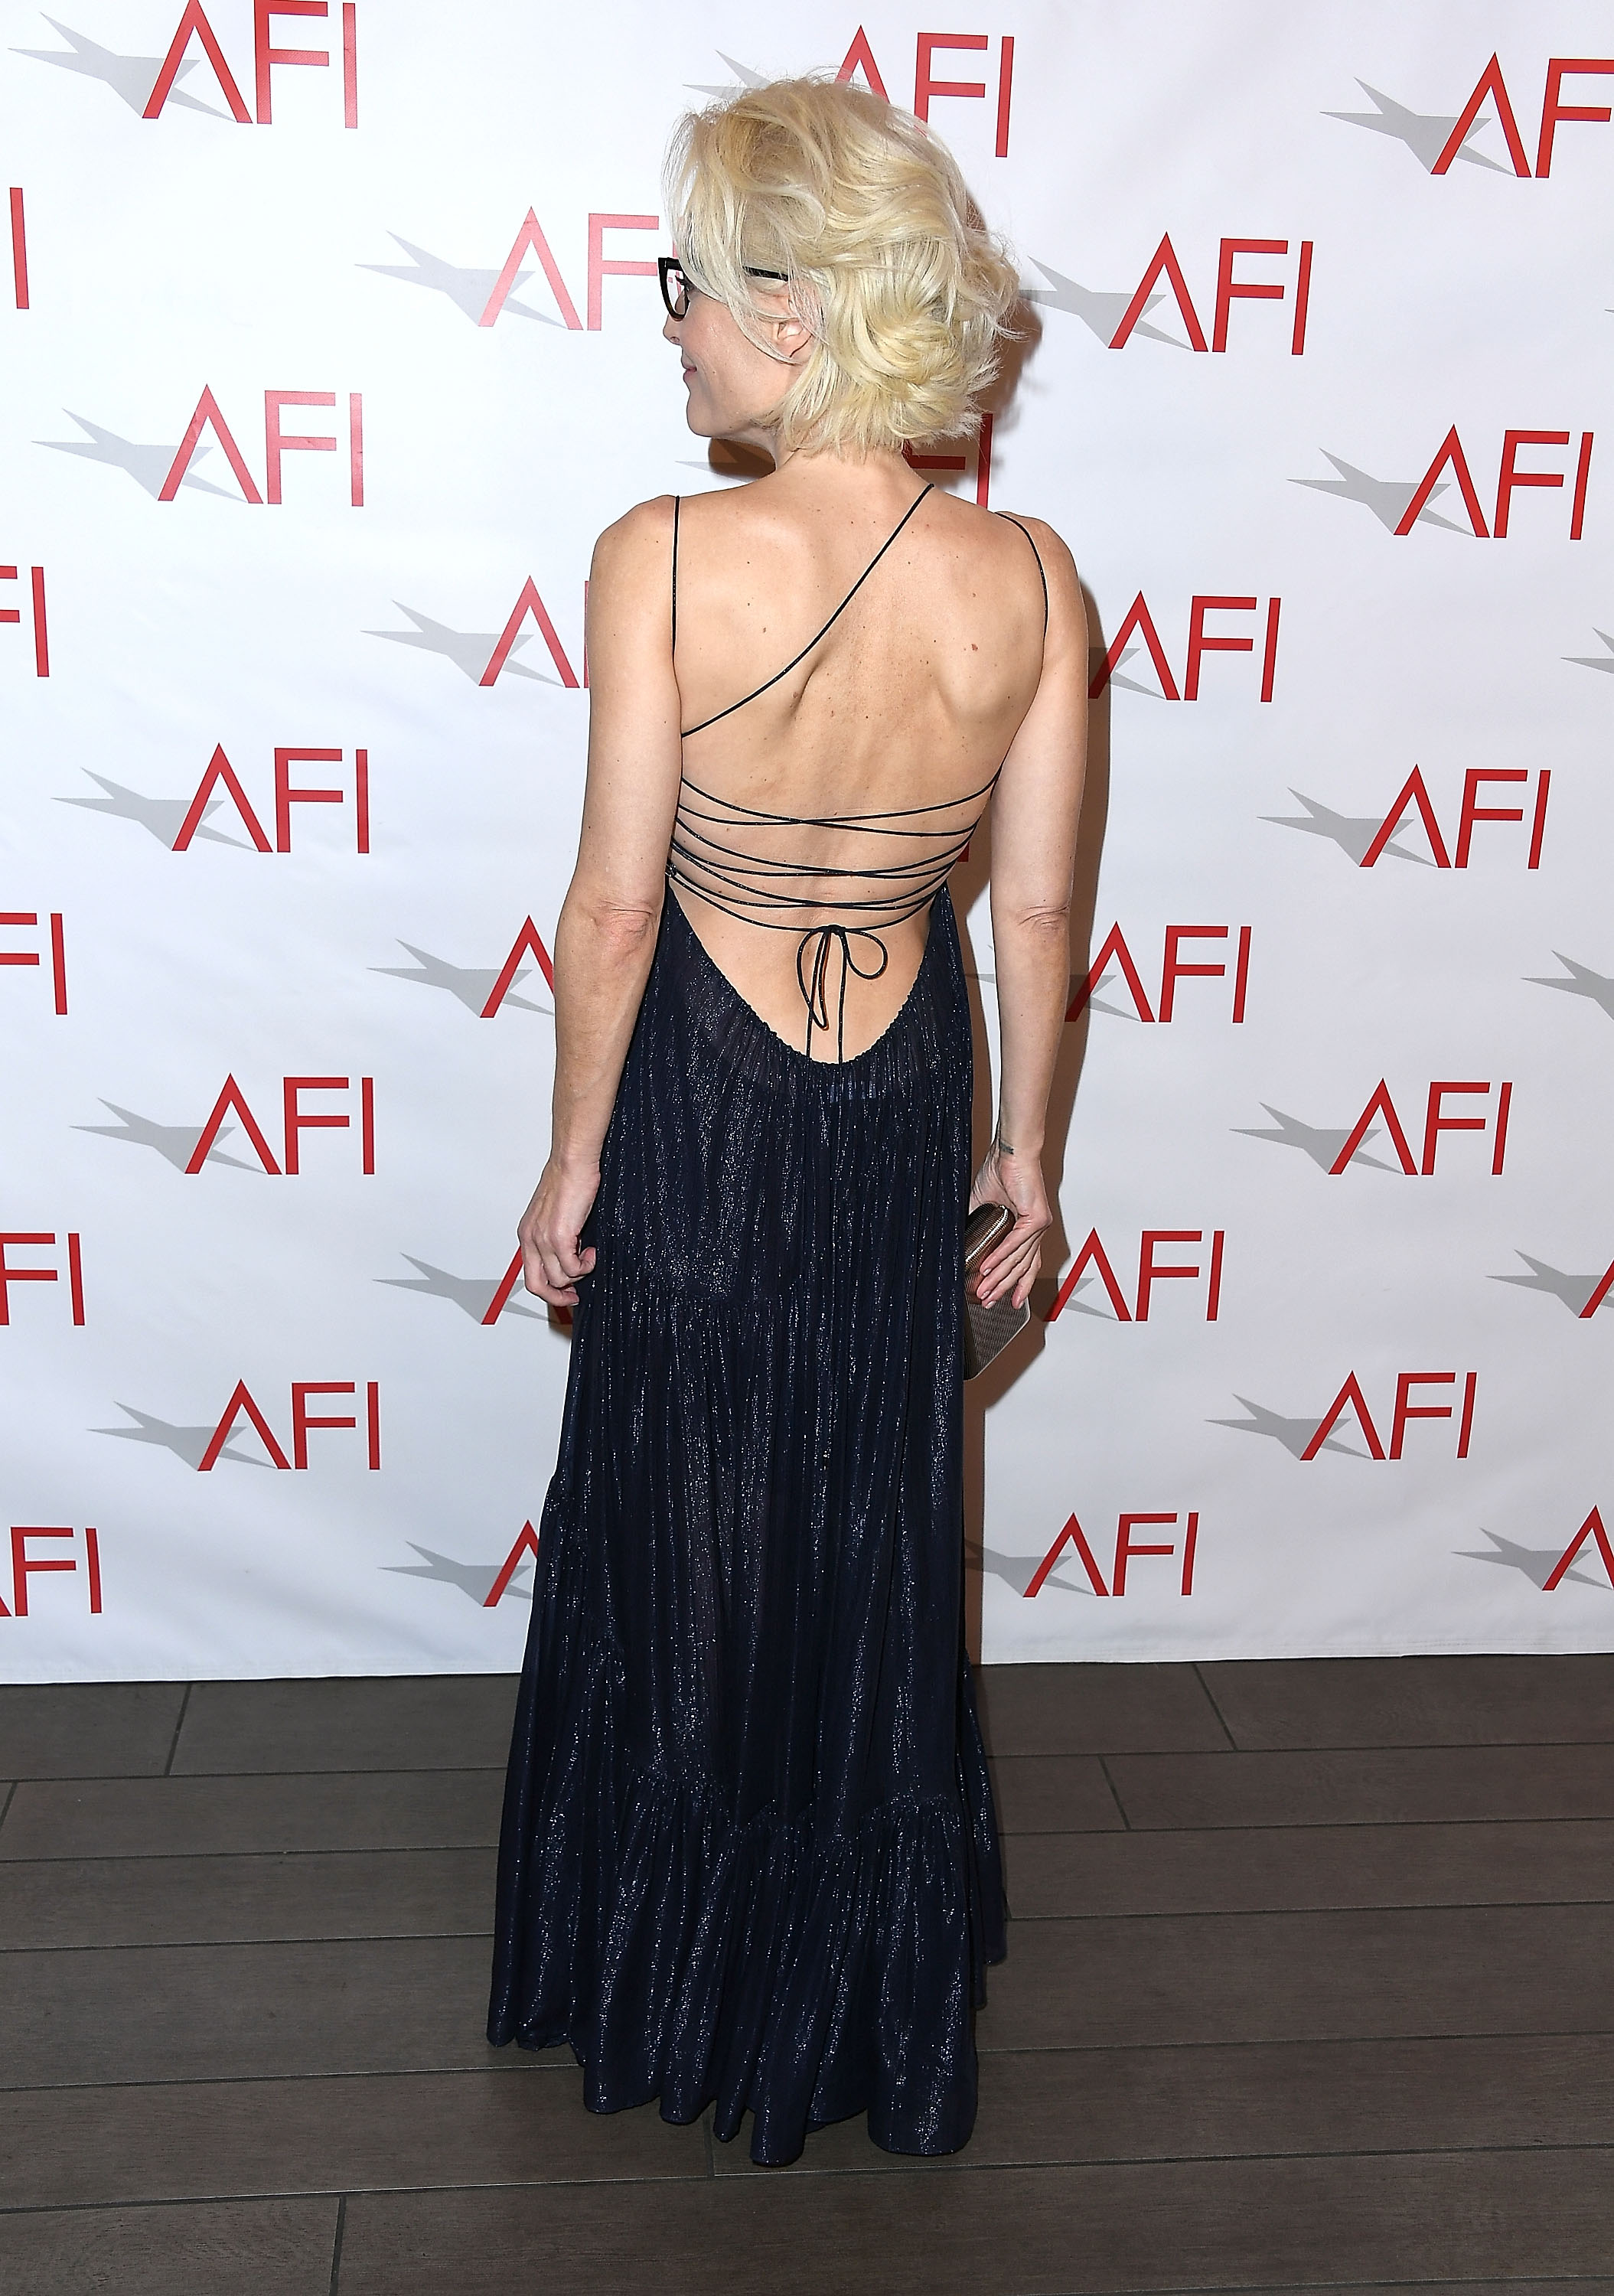 Gillian Anderson arrives at the 18th Annual AFI Awards